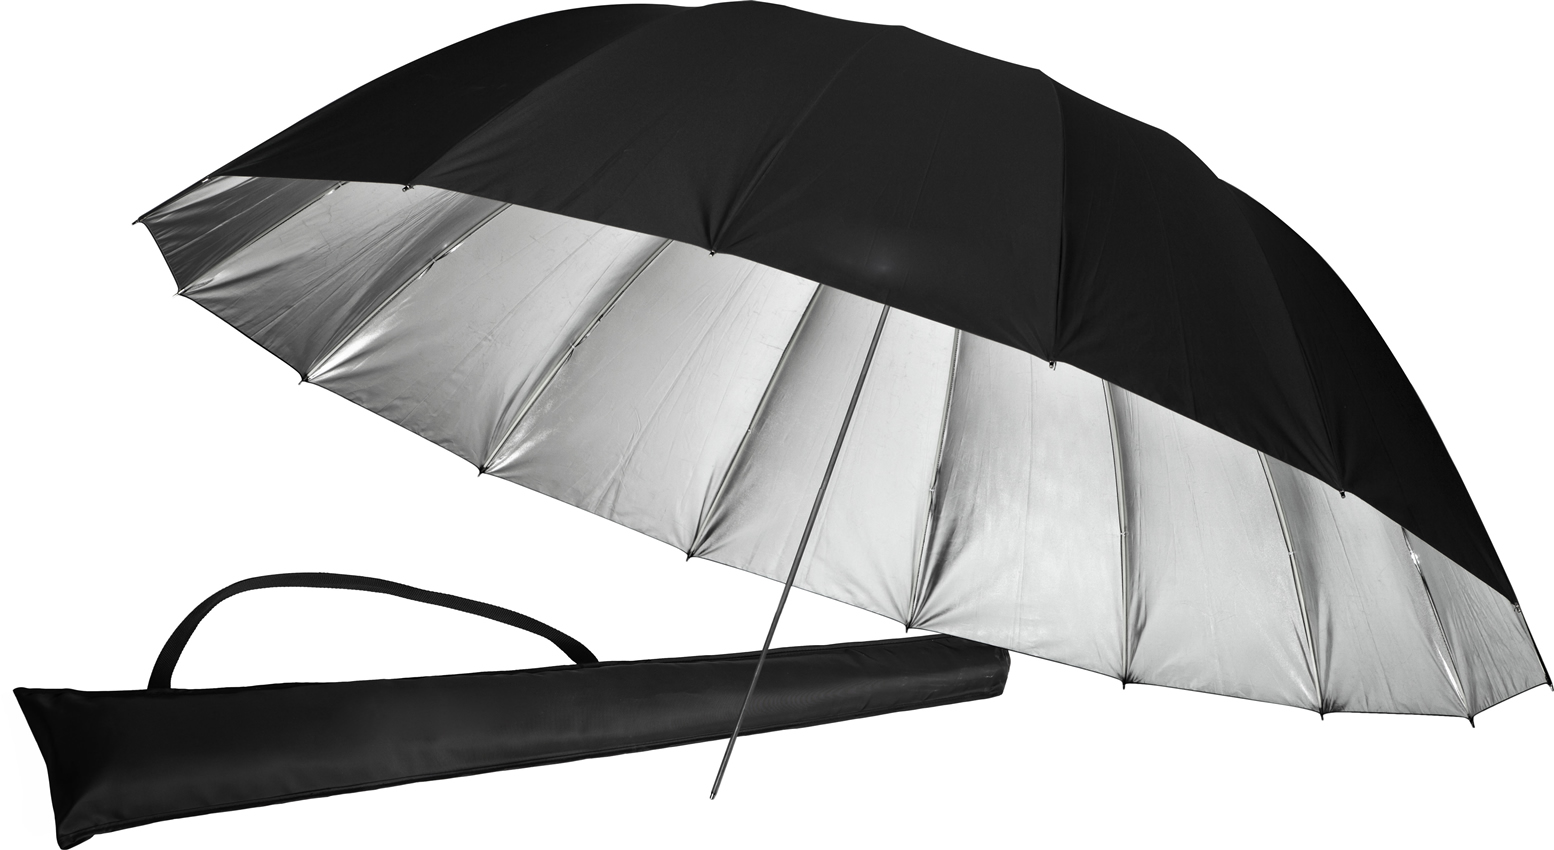 Silver parabolic umbrella for Studio Photography by Photozuela